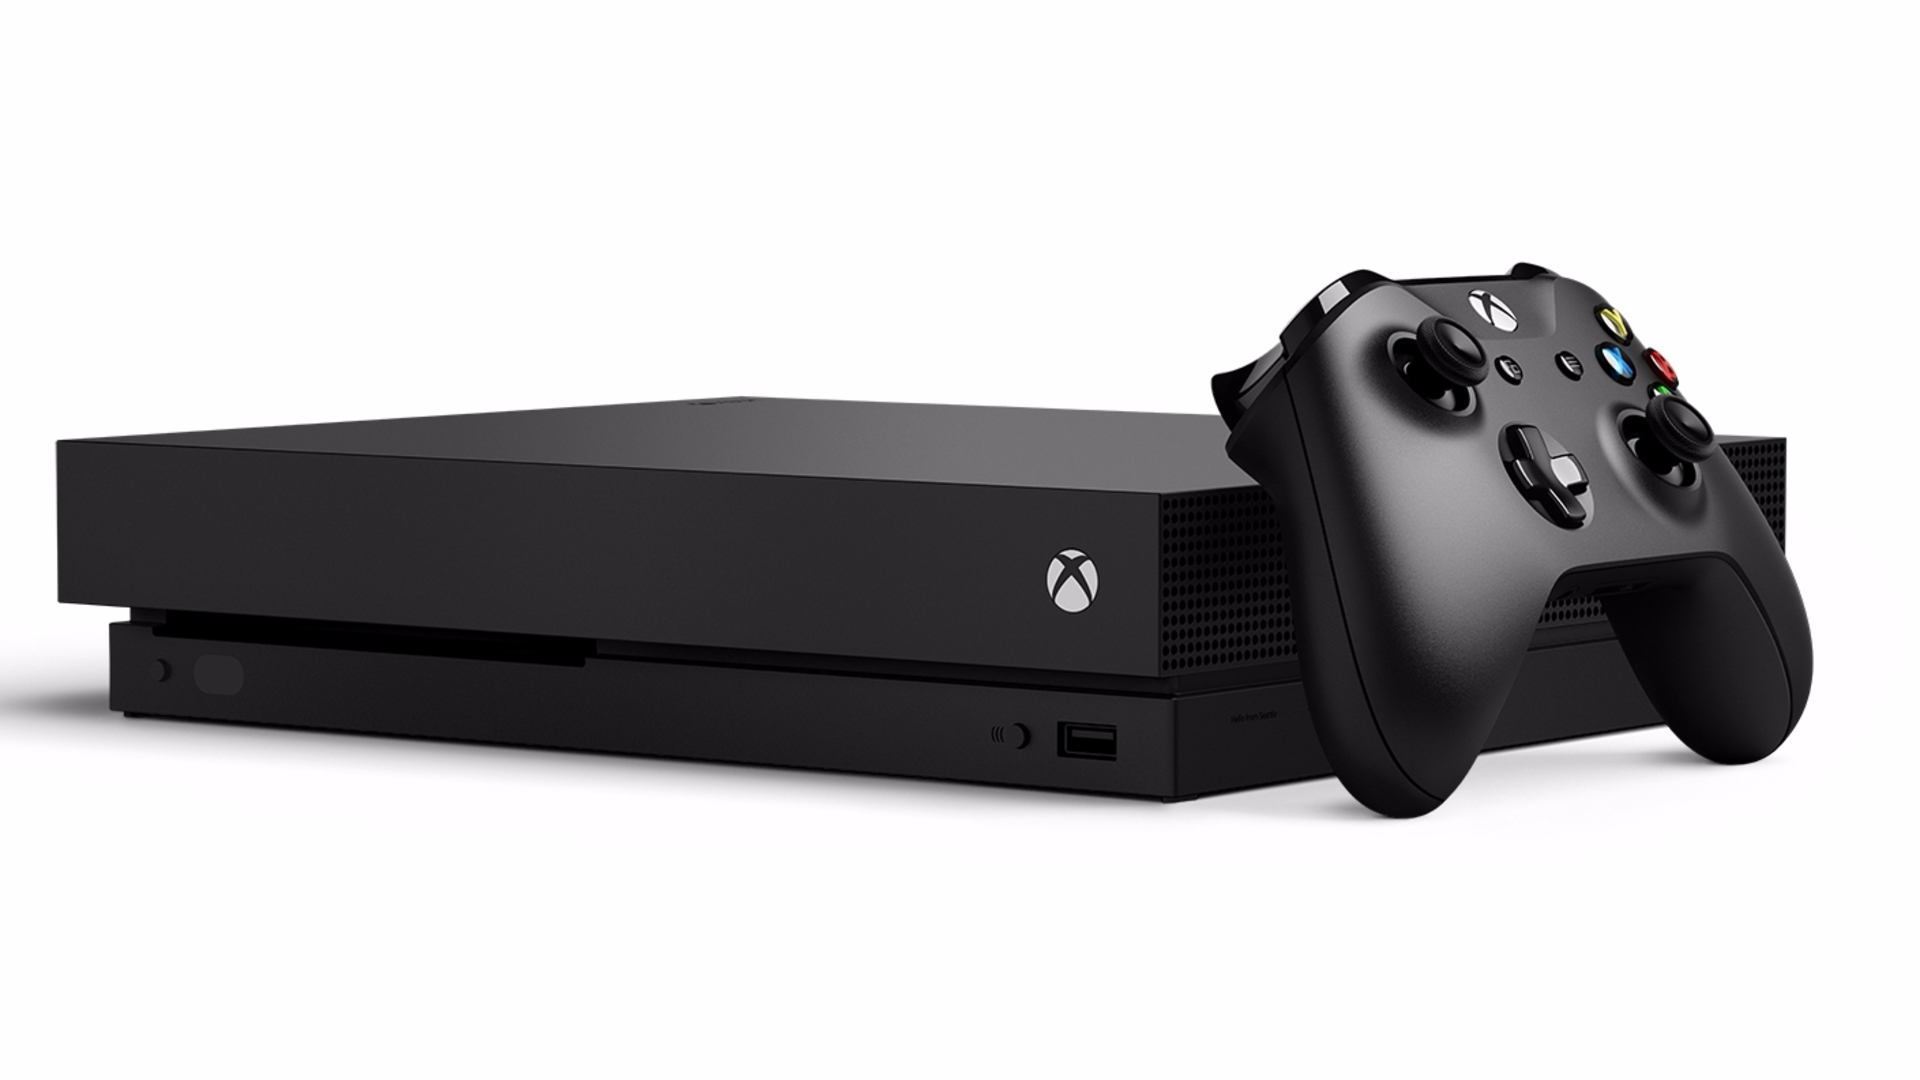 Should You Buy An Xbox One X Hello I Am New To Electronics It Has Recently Become A Hobby Have